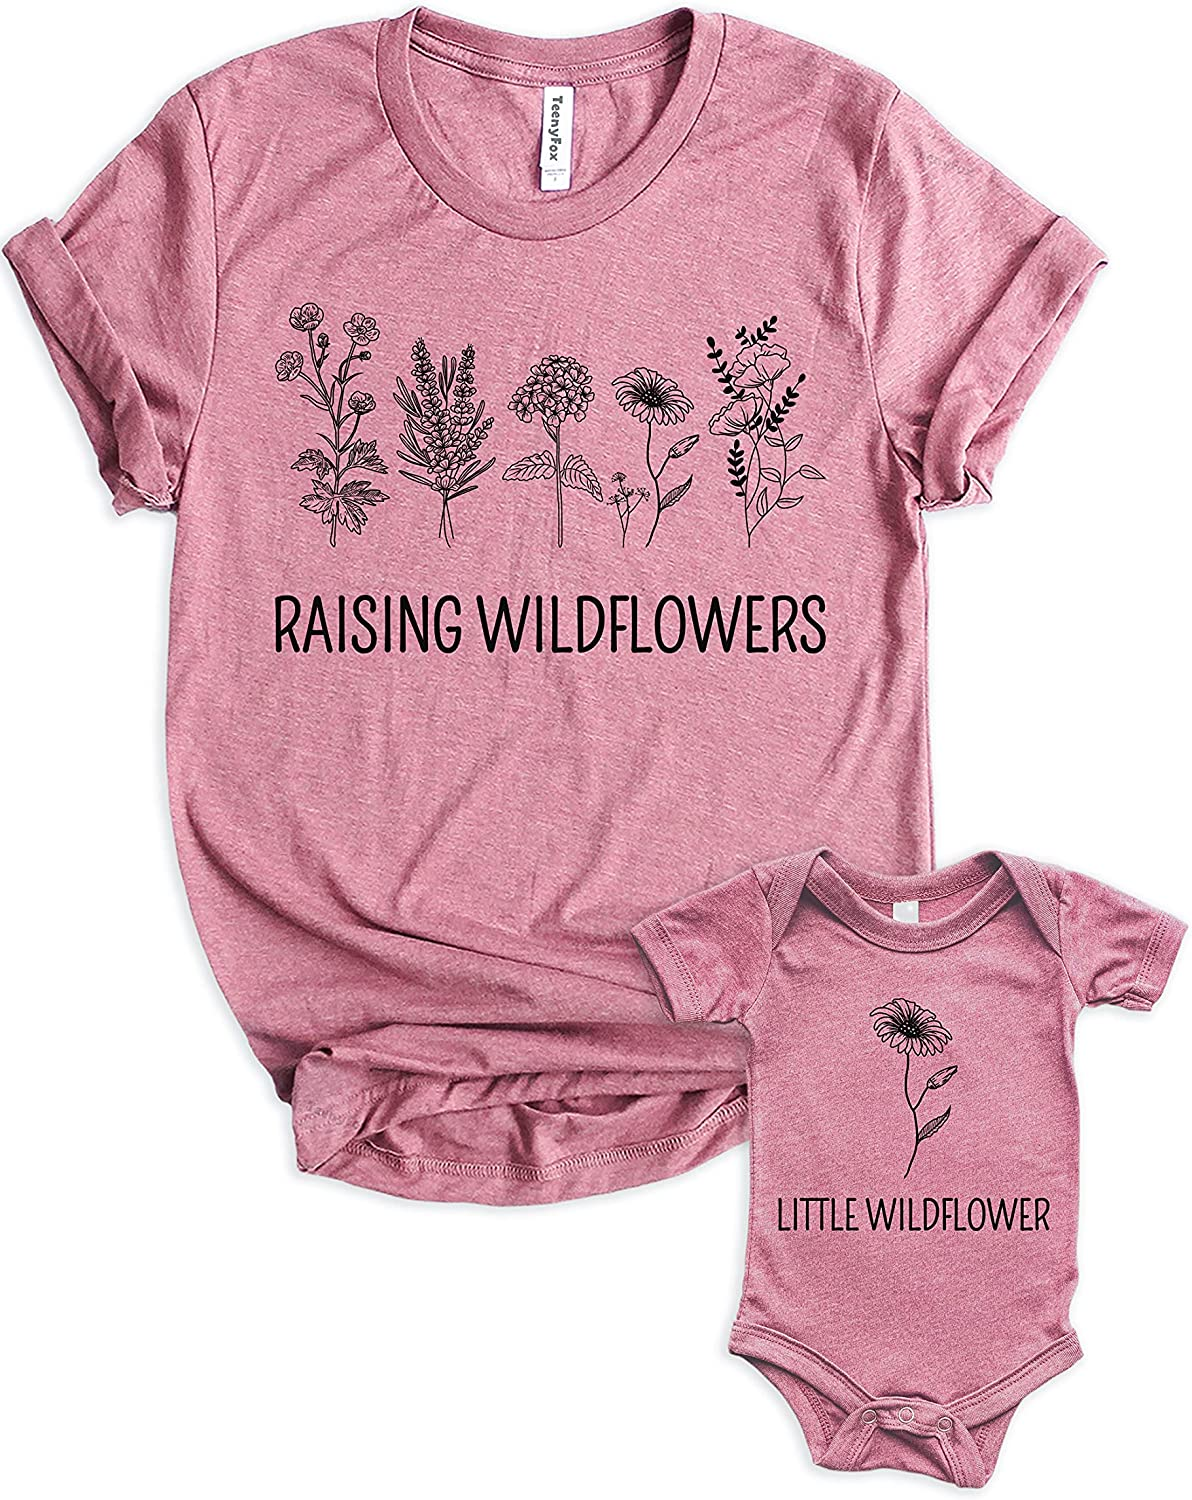 Teeny Fox Raising Wildflowers Little Sunflower Mother Girl Baby Matching Outfits Cute Family Shirts